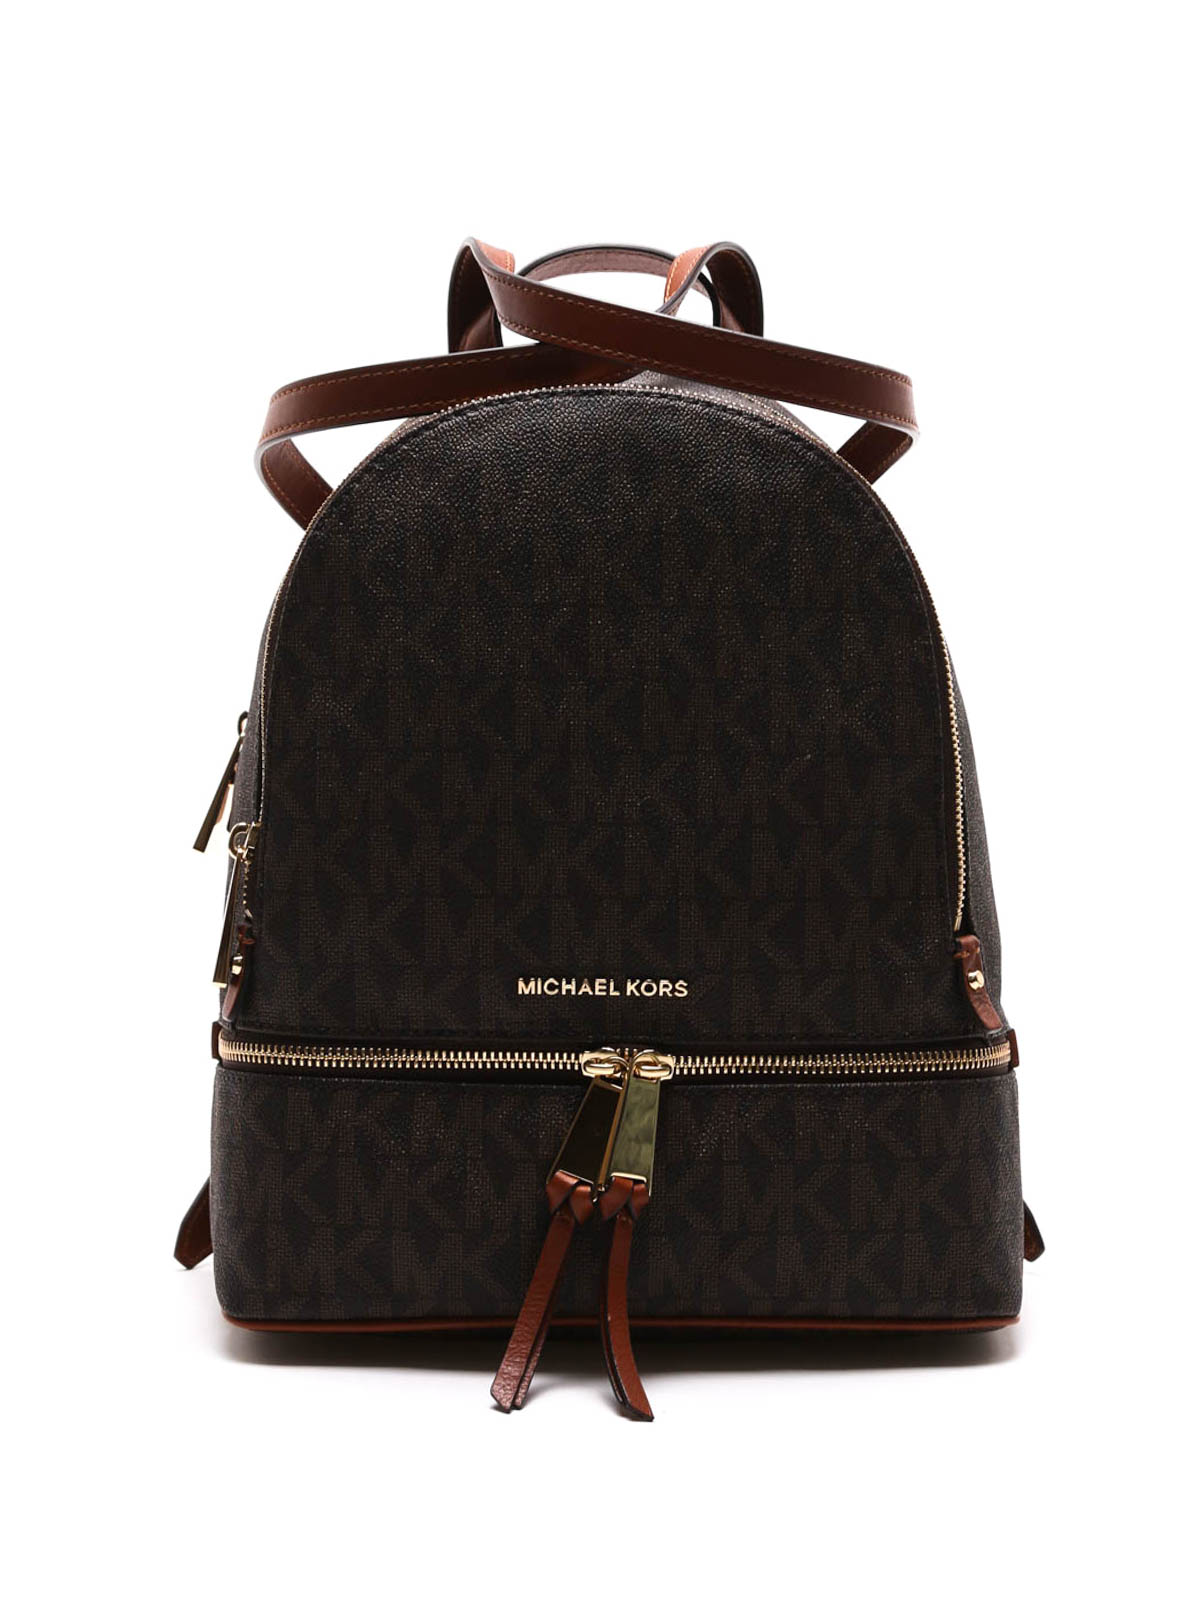 Michael Kors - Rhea signature small backpack - backpacks - 30H5GEZB1B 200